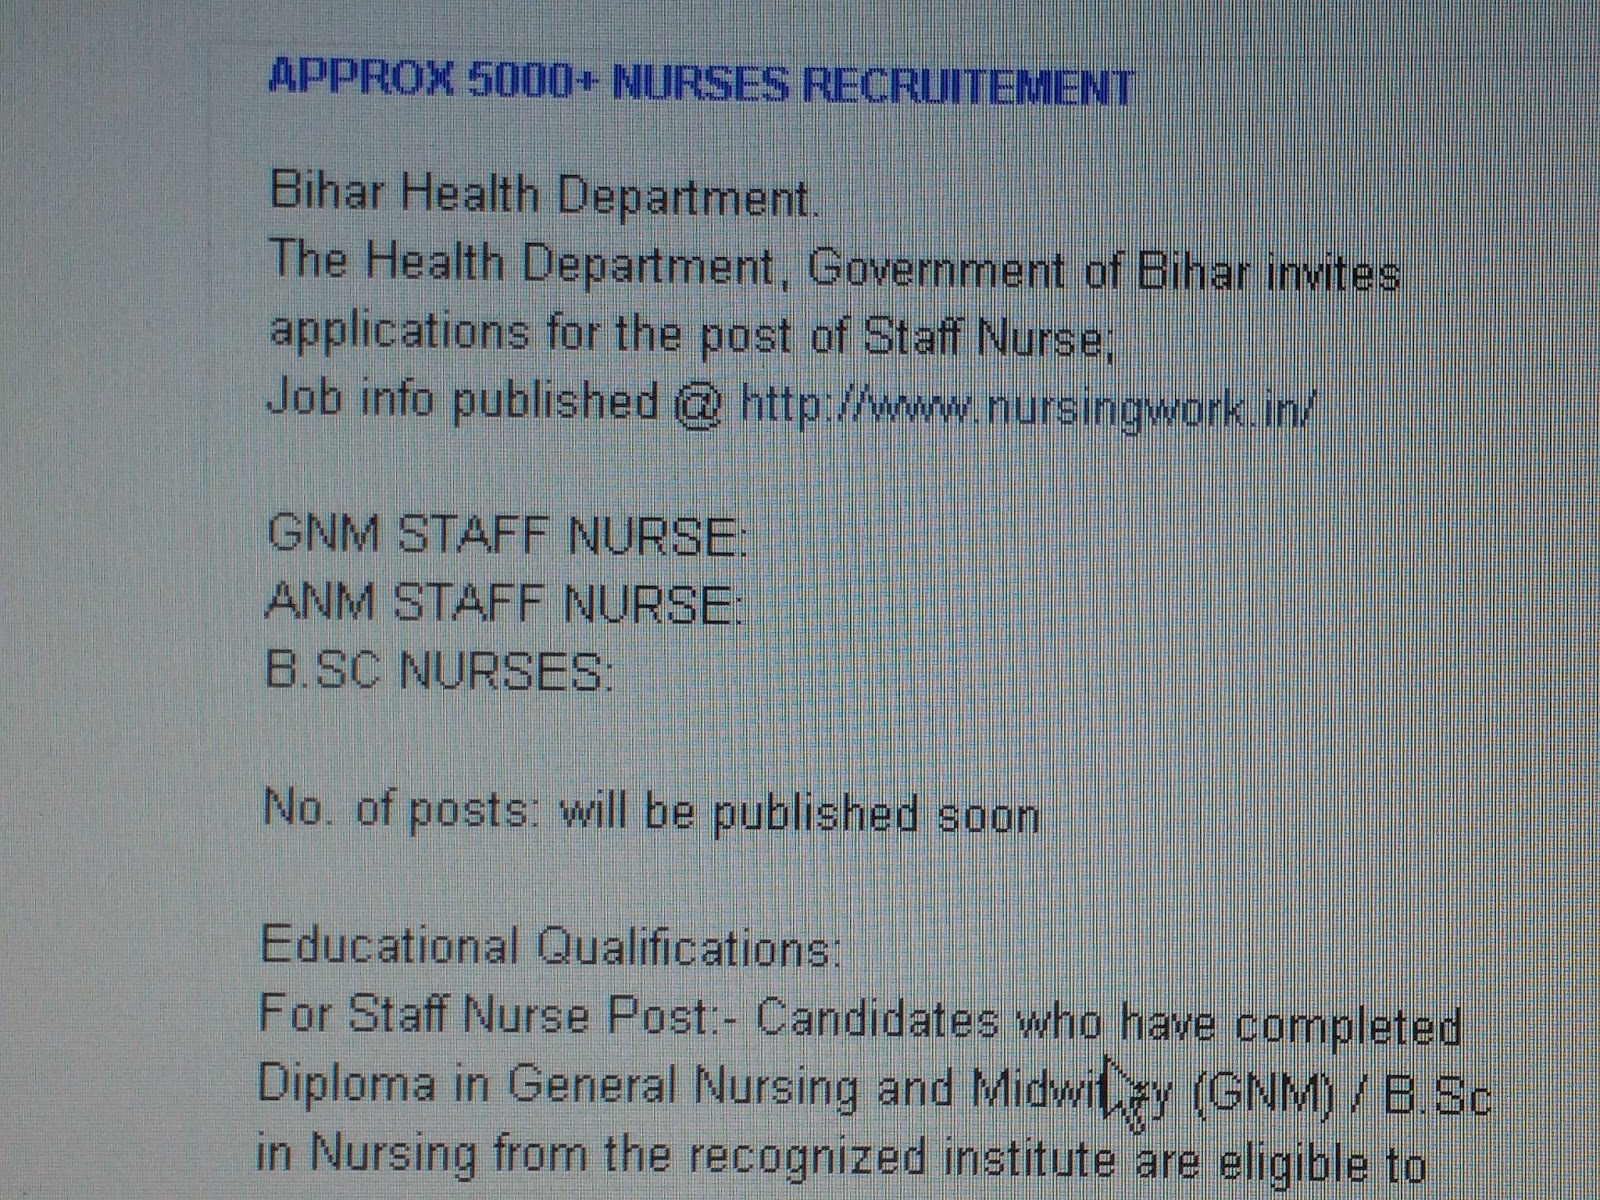 nursing jobs in 2016 the health department government of bihar invites applications for the post of staff nurse job info published nursingwork in